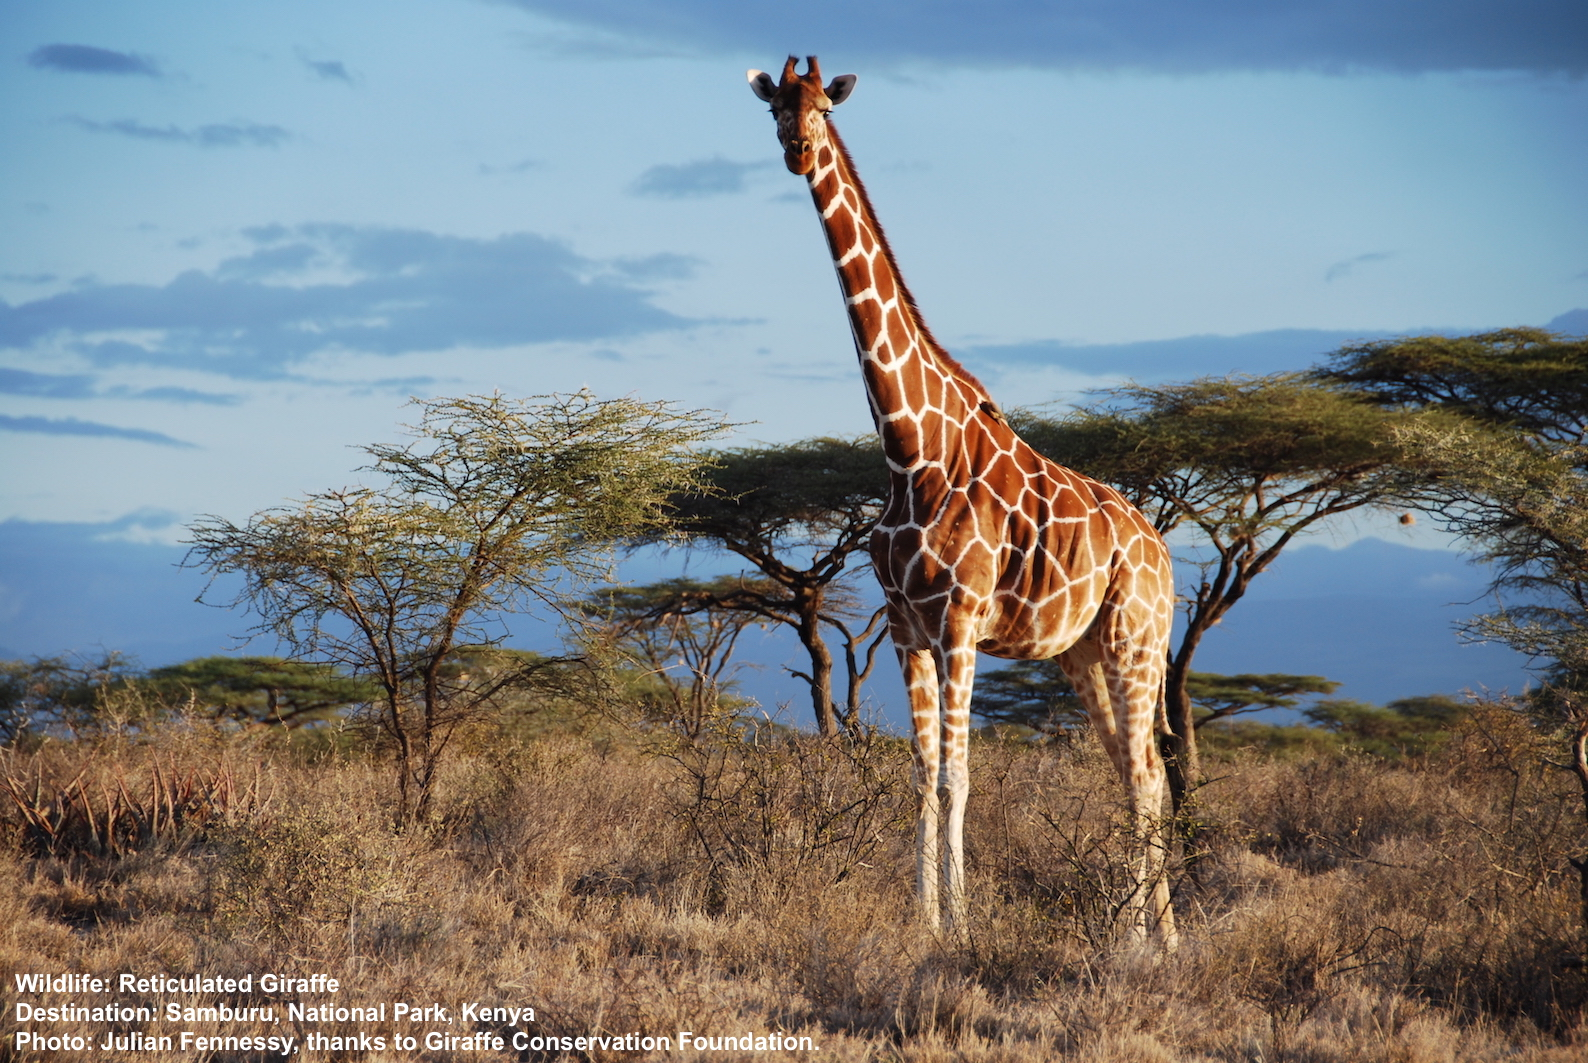 Reticulated Giraffe in Samuru National Park, Kenya. Image ©Julian Fennesy with thanks to Giraffe Conservation Foundation.